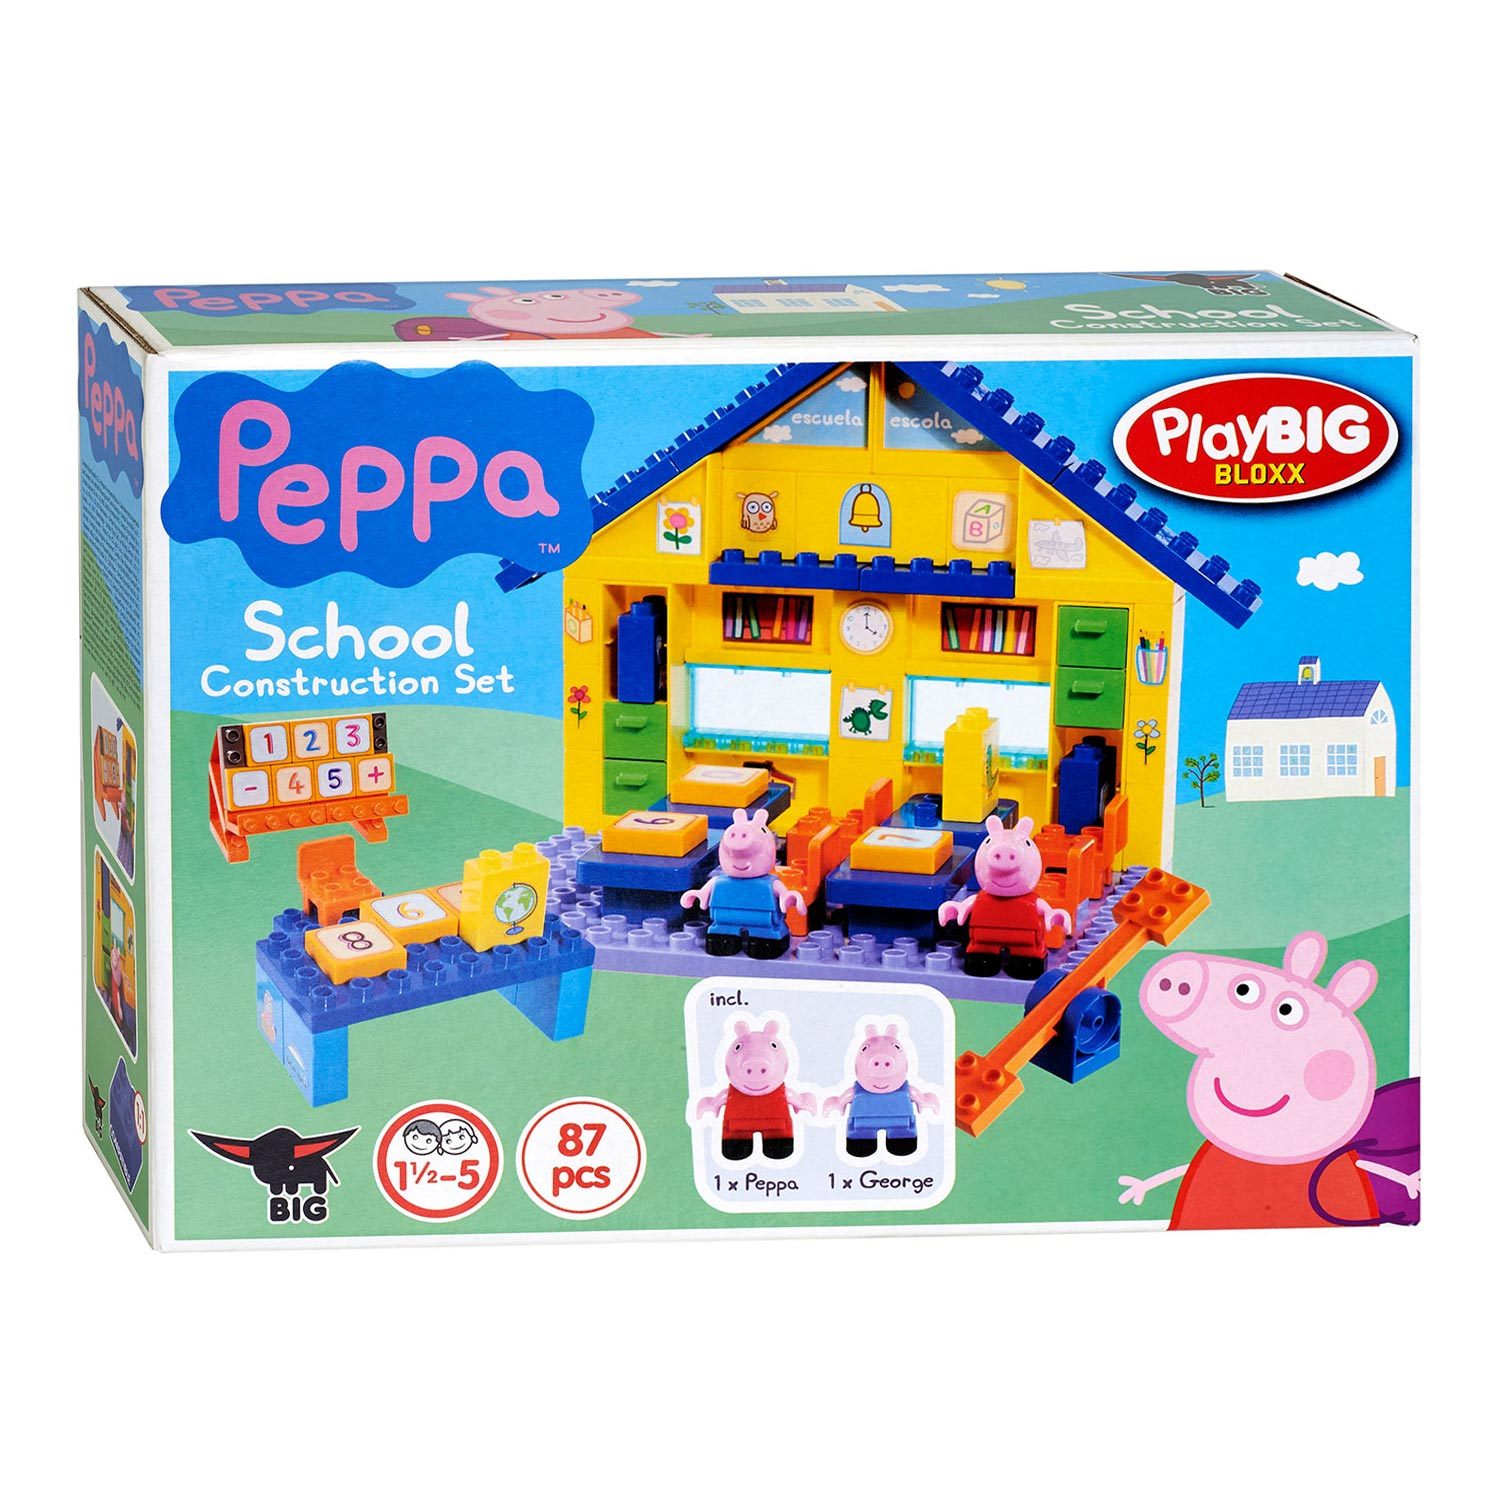 PlayBIG Bloxx Peppa Pig School